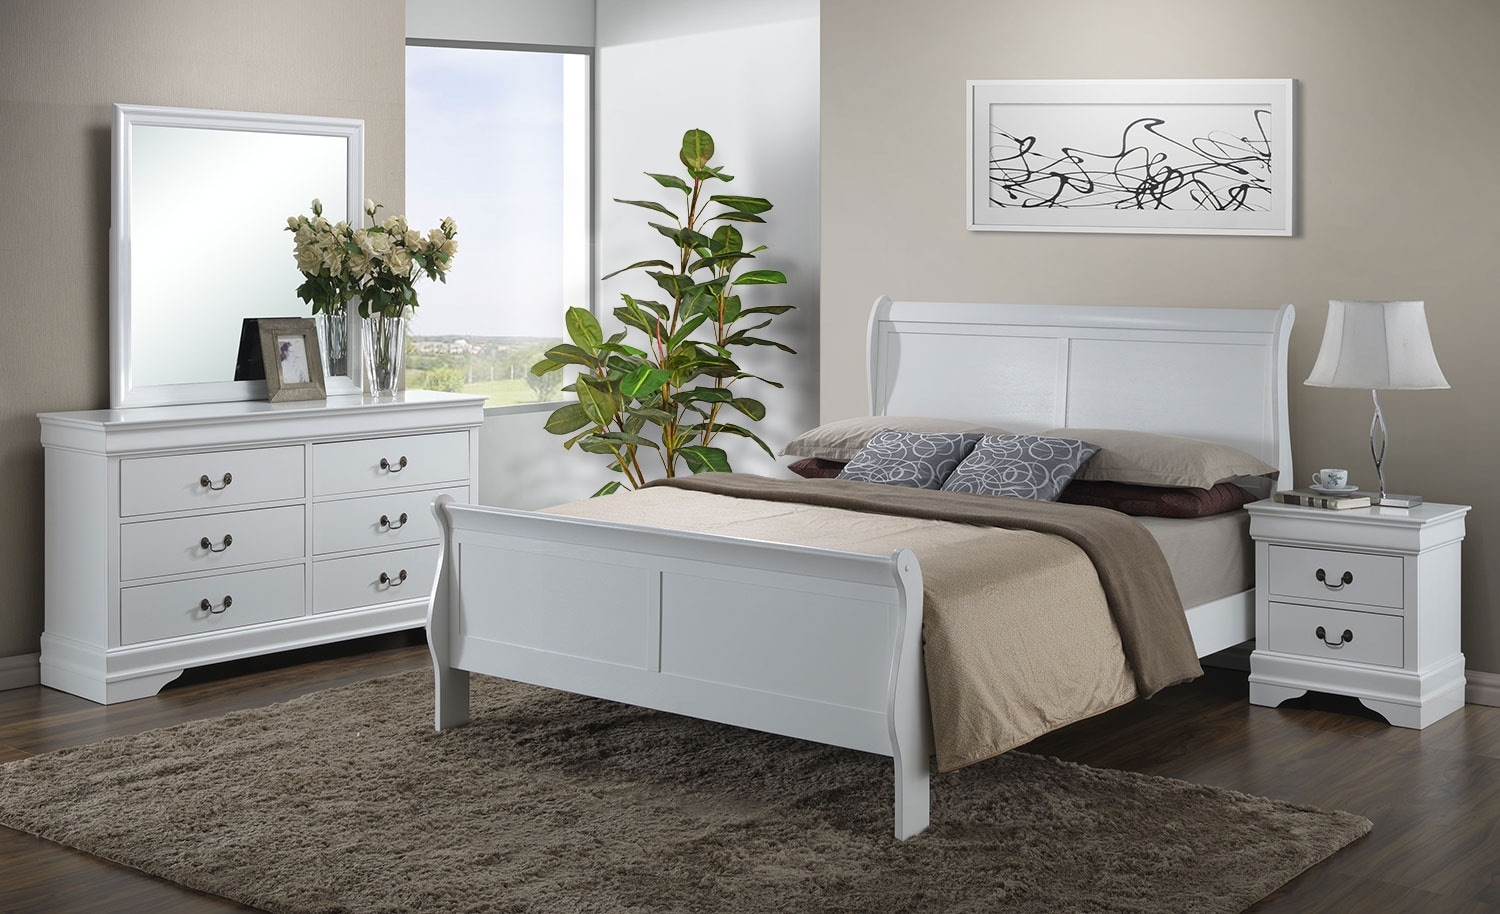 Bedroom Furniture - Belleview 6-Piece Full Bedroom Package - White